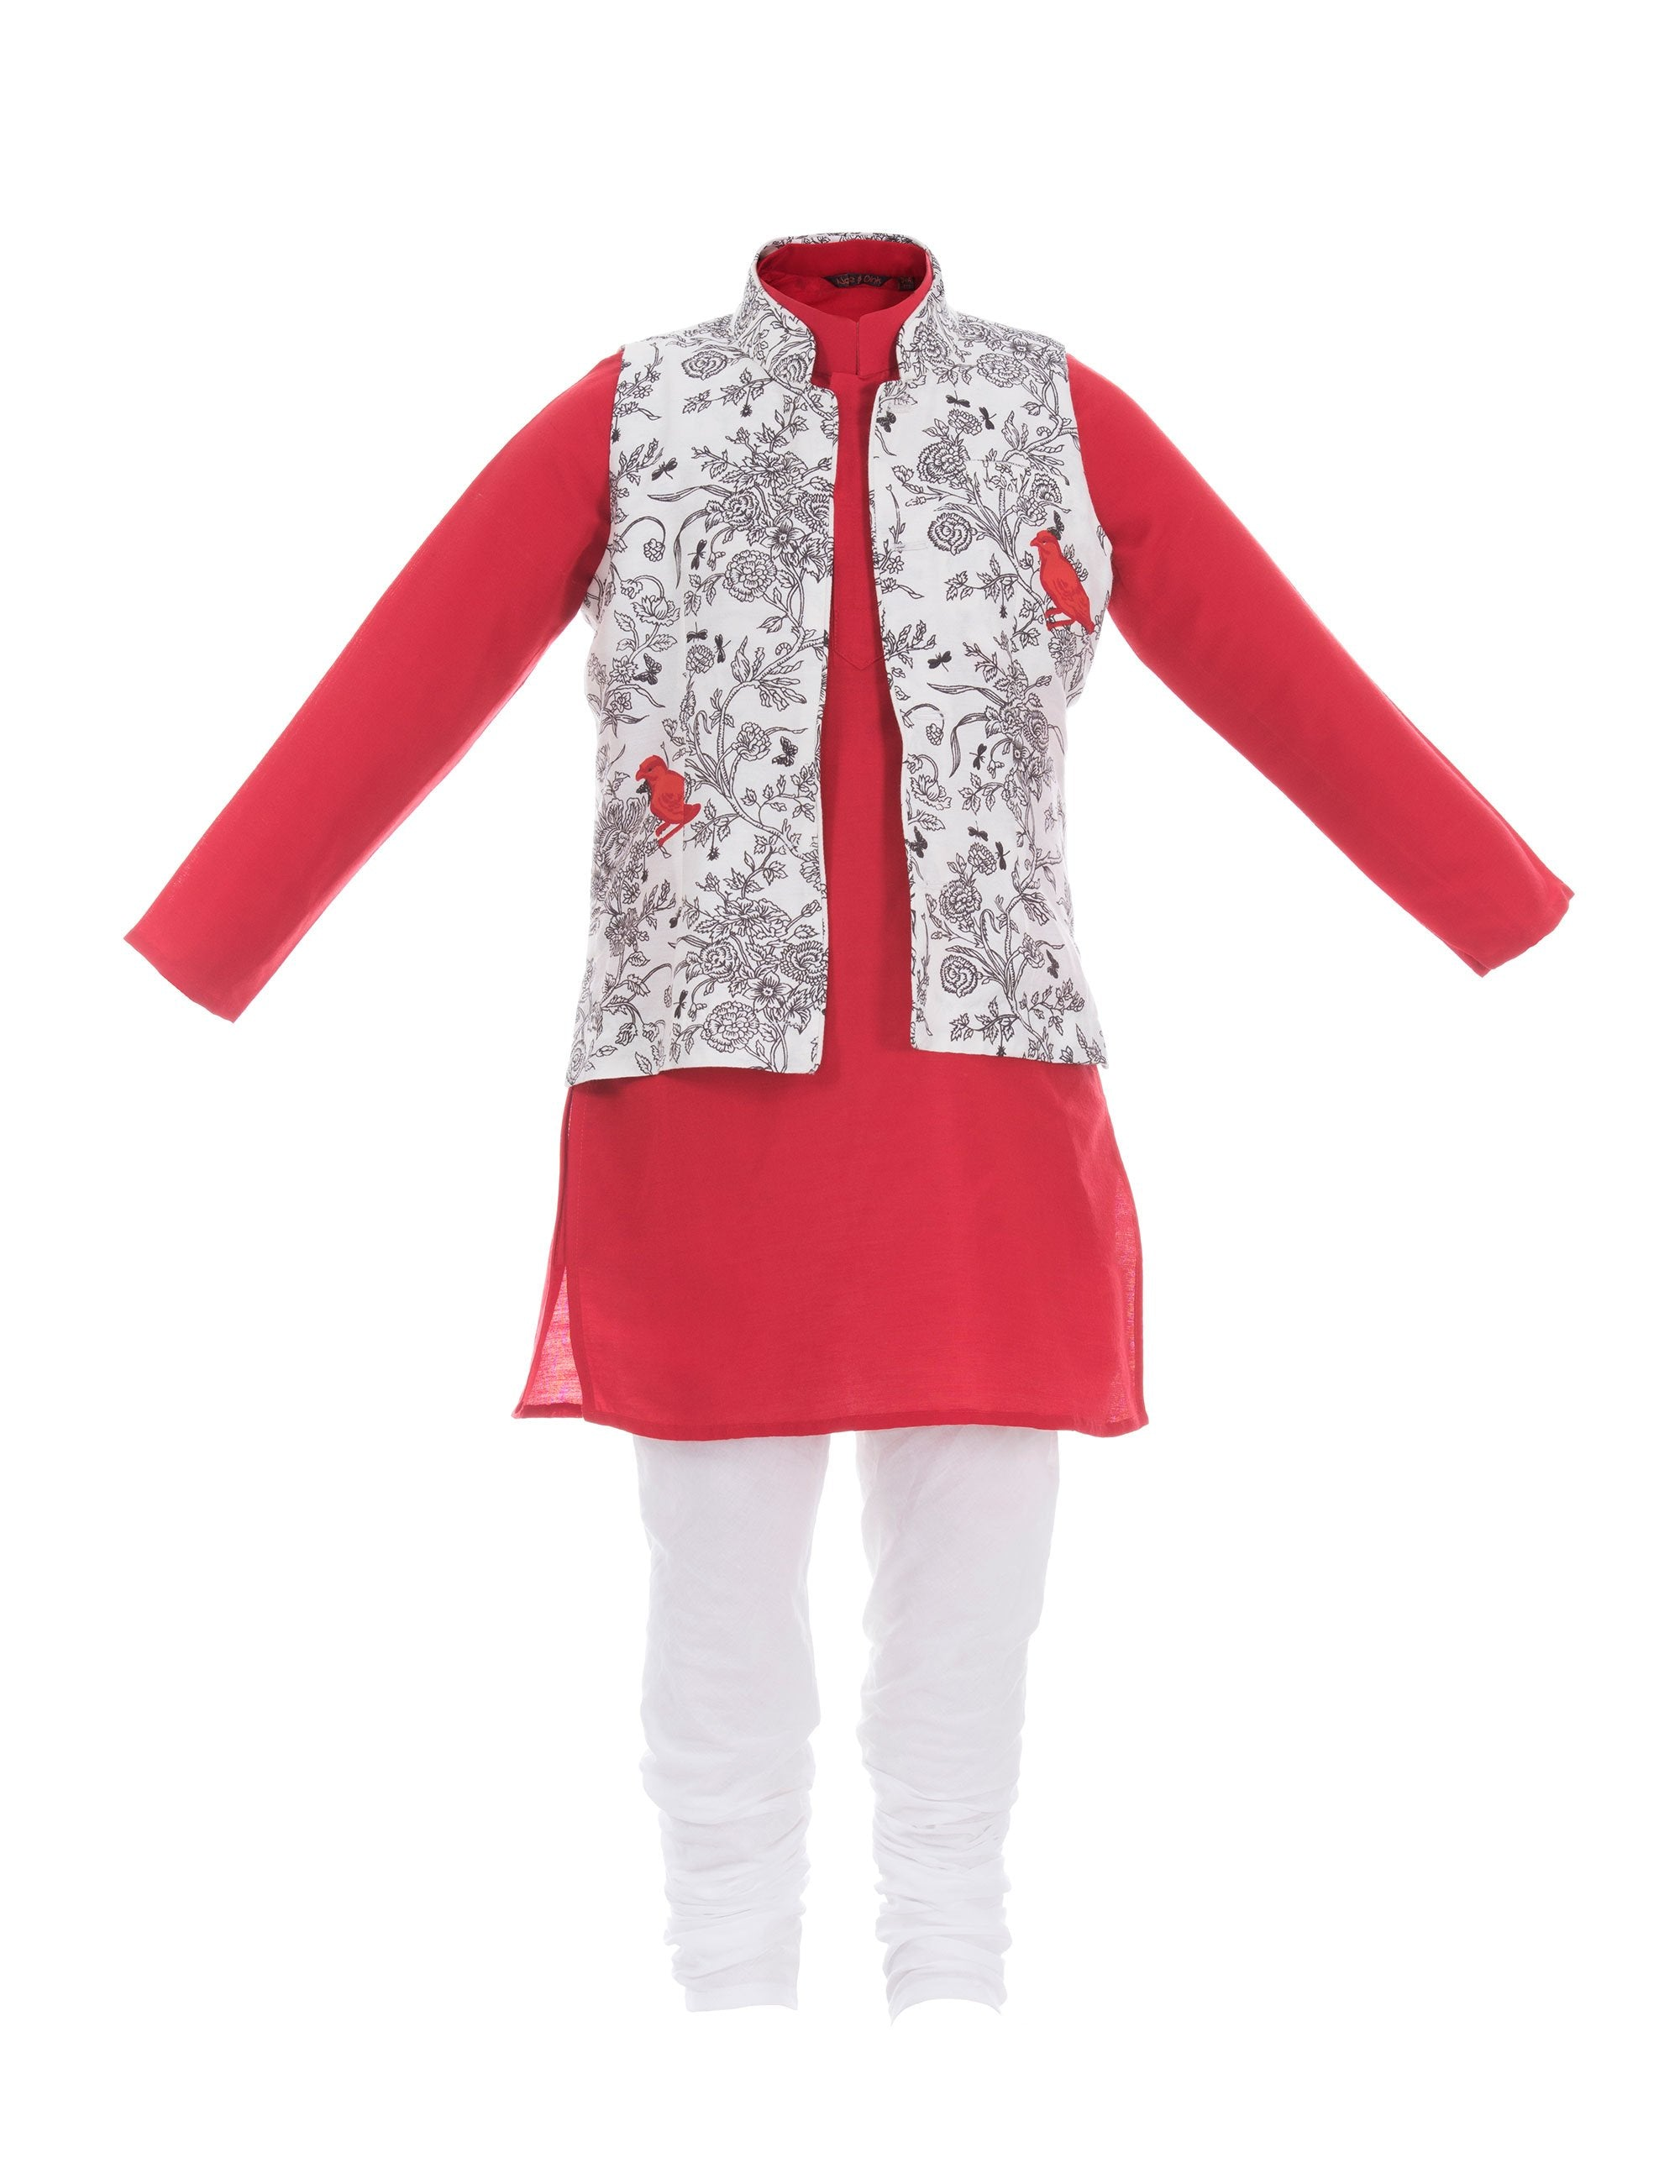 Boys Kurta with Printed Jacket in Red for Boys